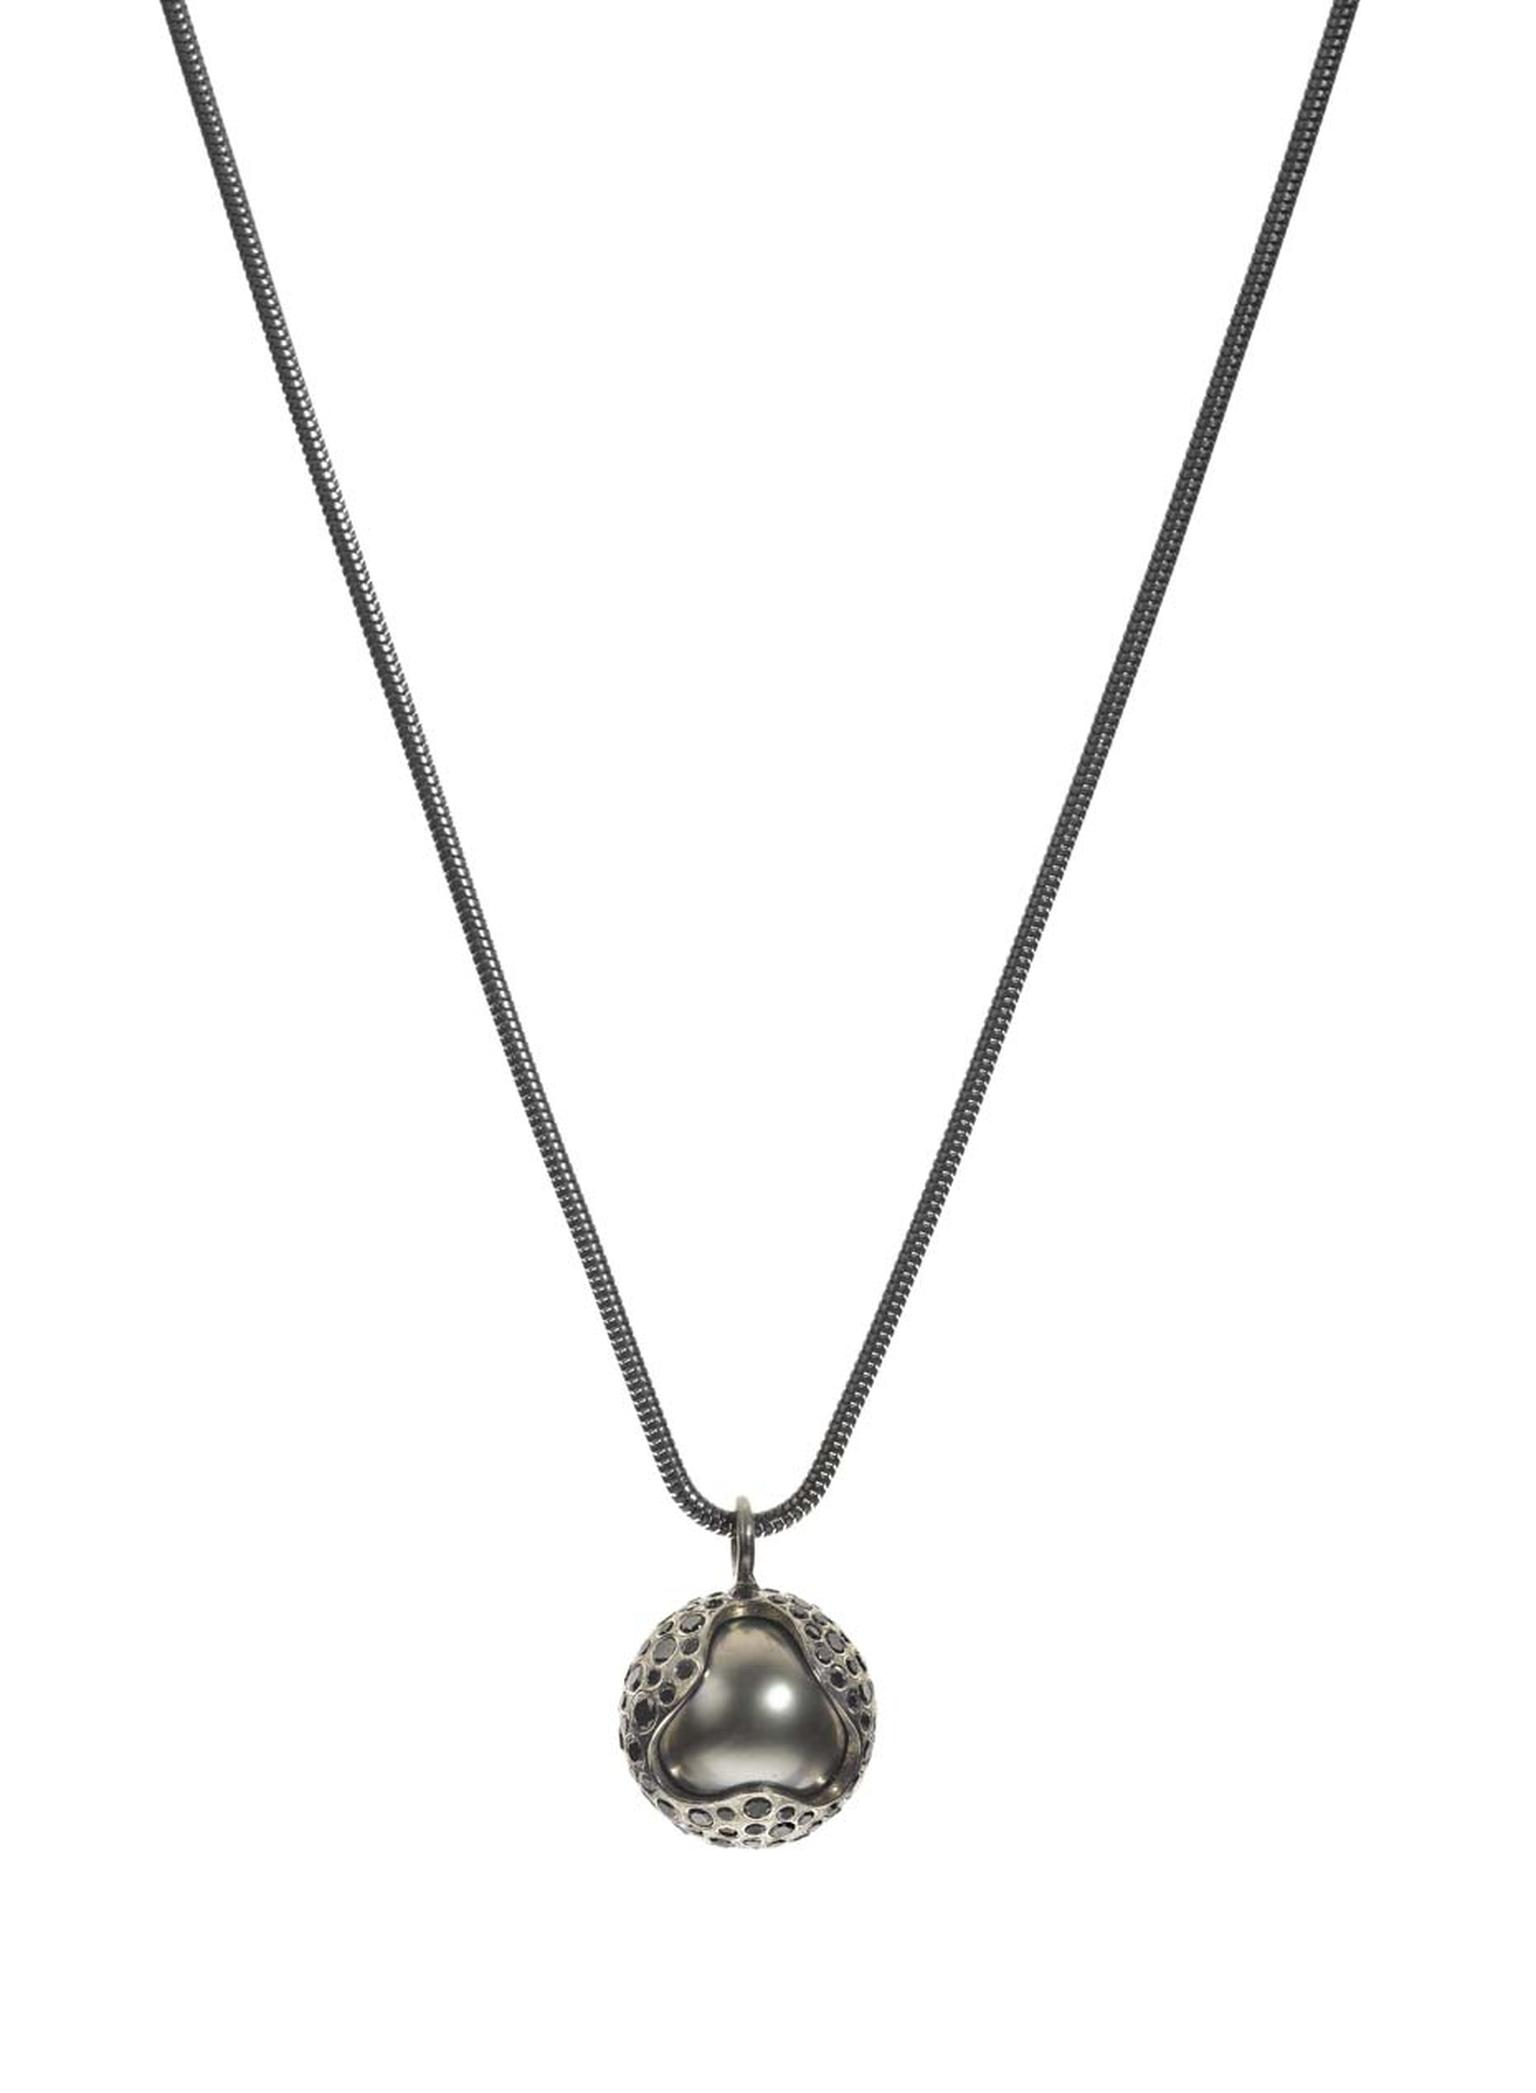 Todd Reed Tahitian pearl necklace in textured white gold, set with black diamonds